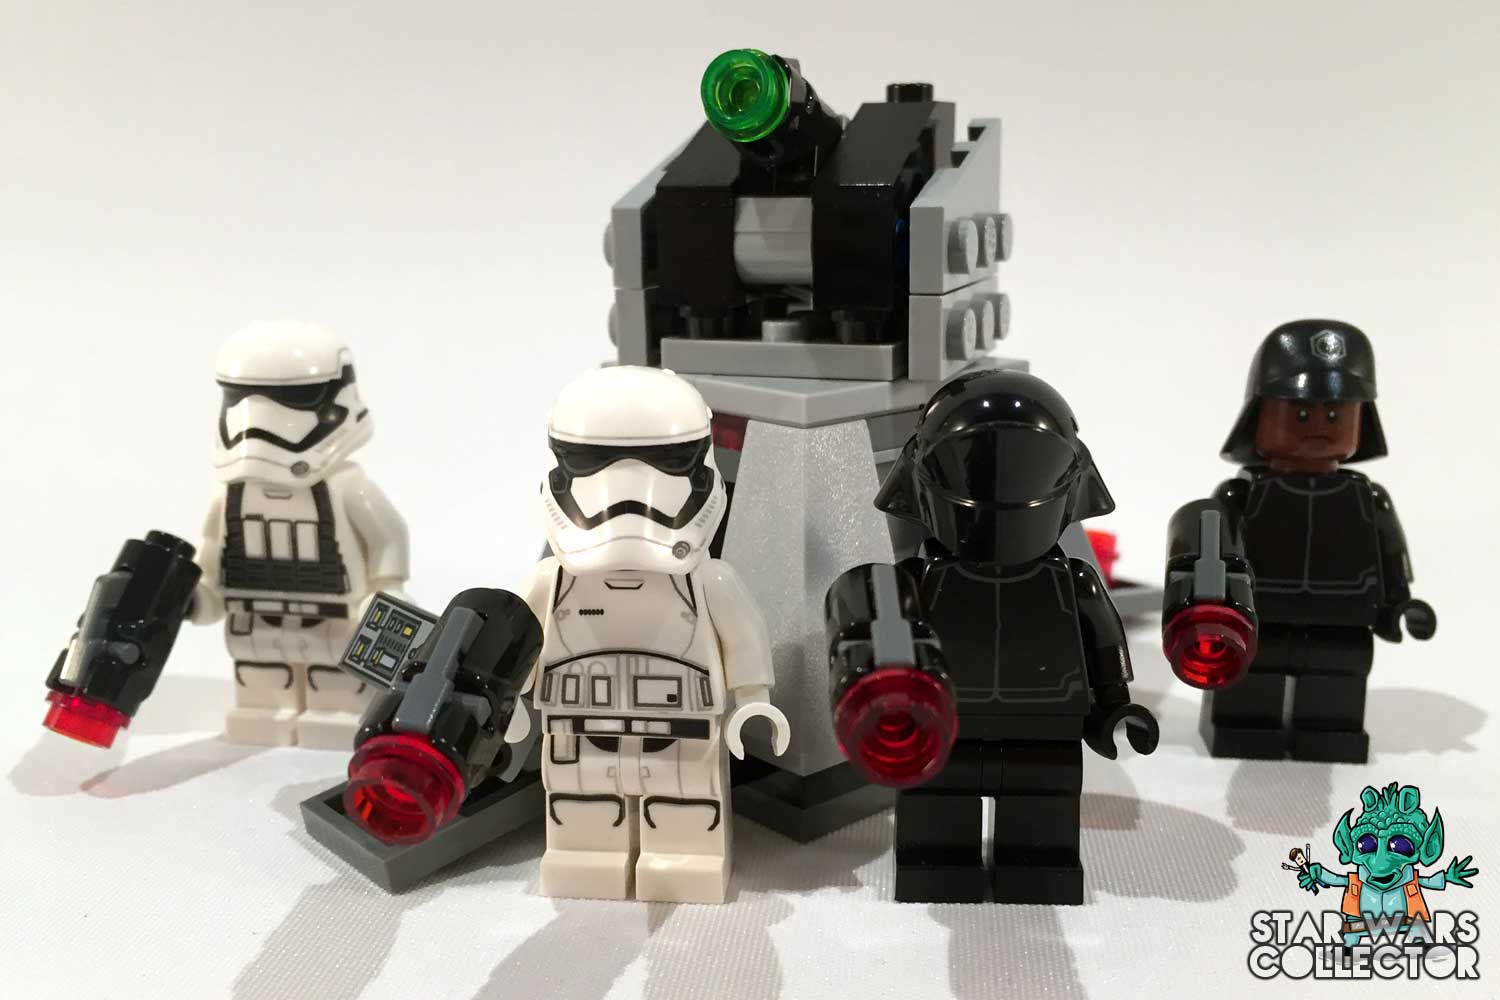 LEGO Star Wars 75132 First Order Battle Pack